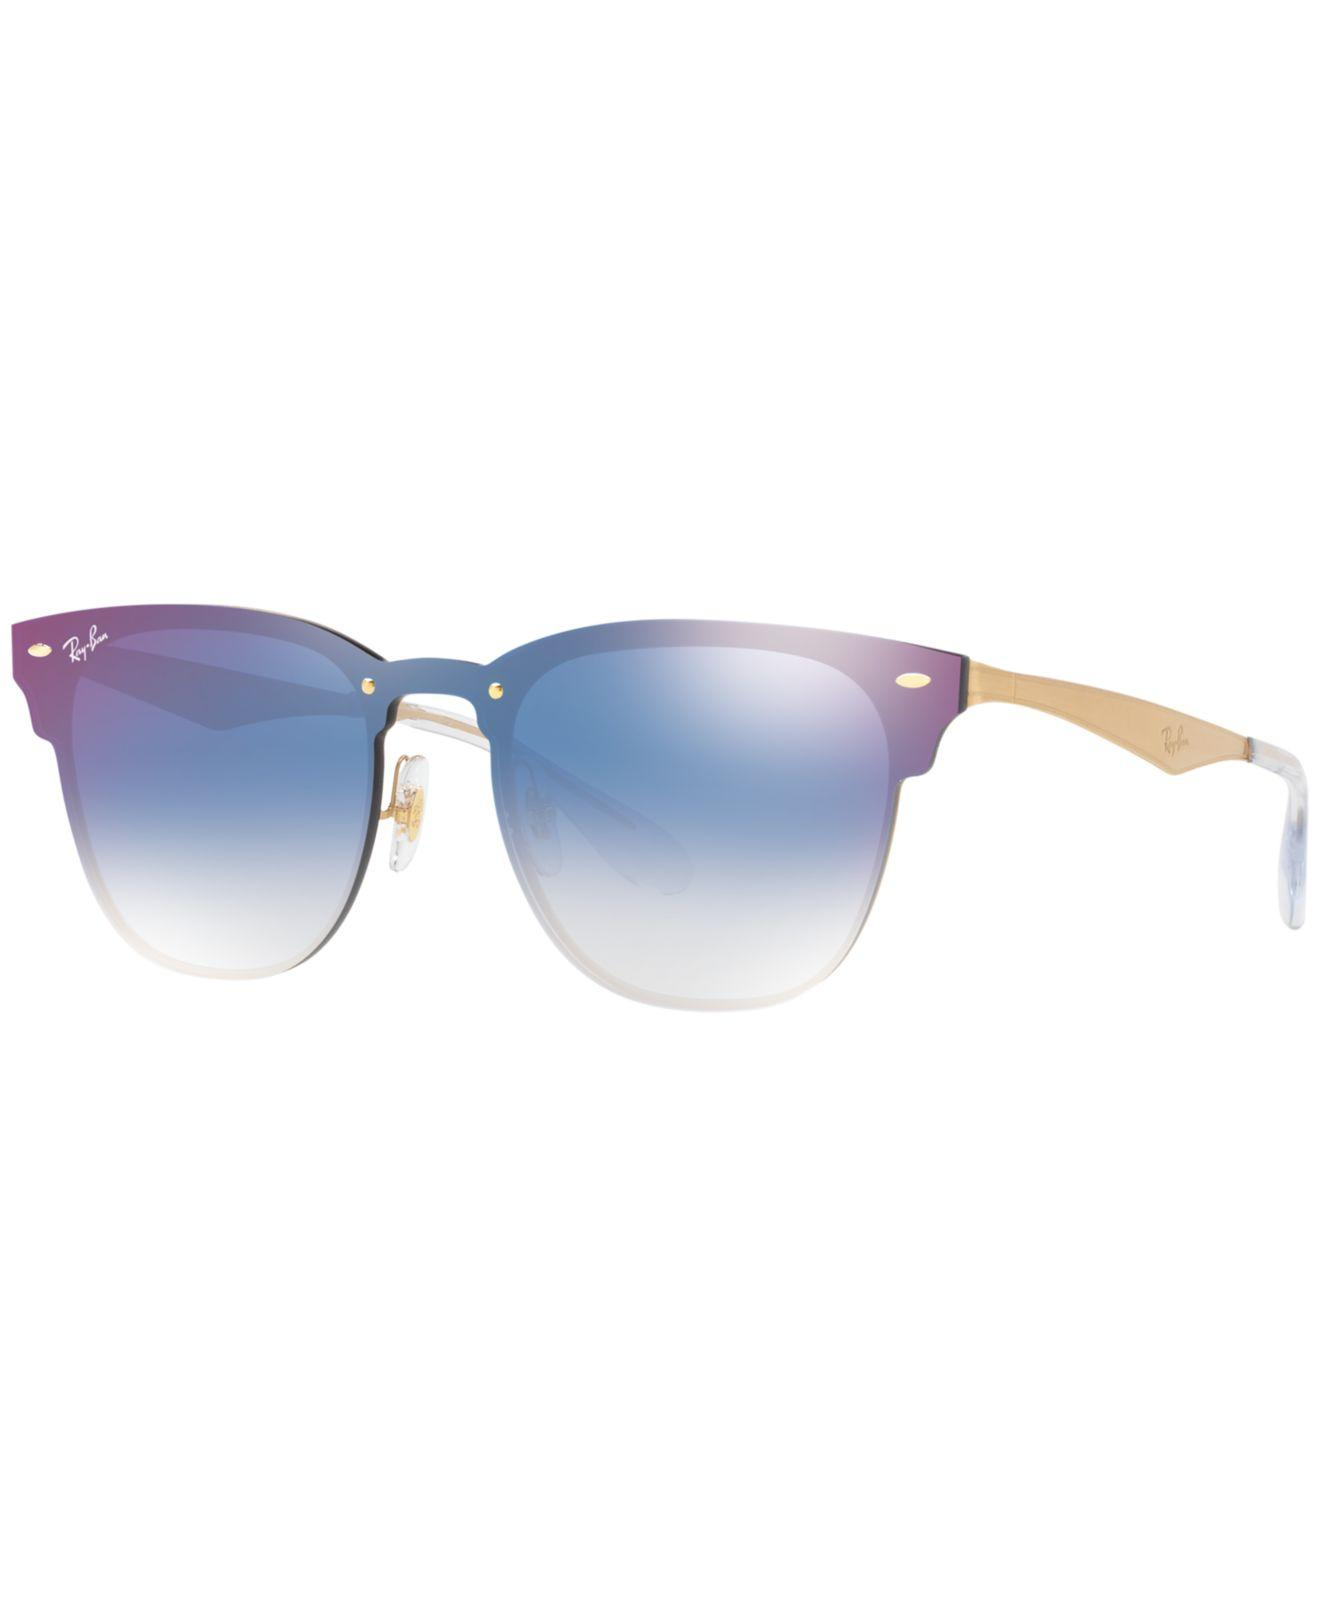 c689fa2d4c Lyst - Ray-Ban Rb3576n Unisex Blaze Clubmaster Square Sunglasses in ...